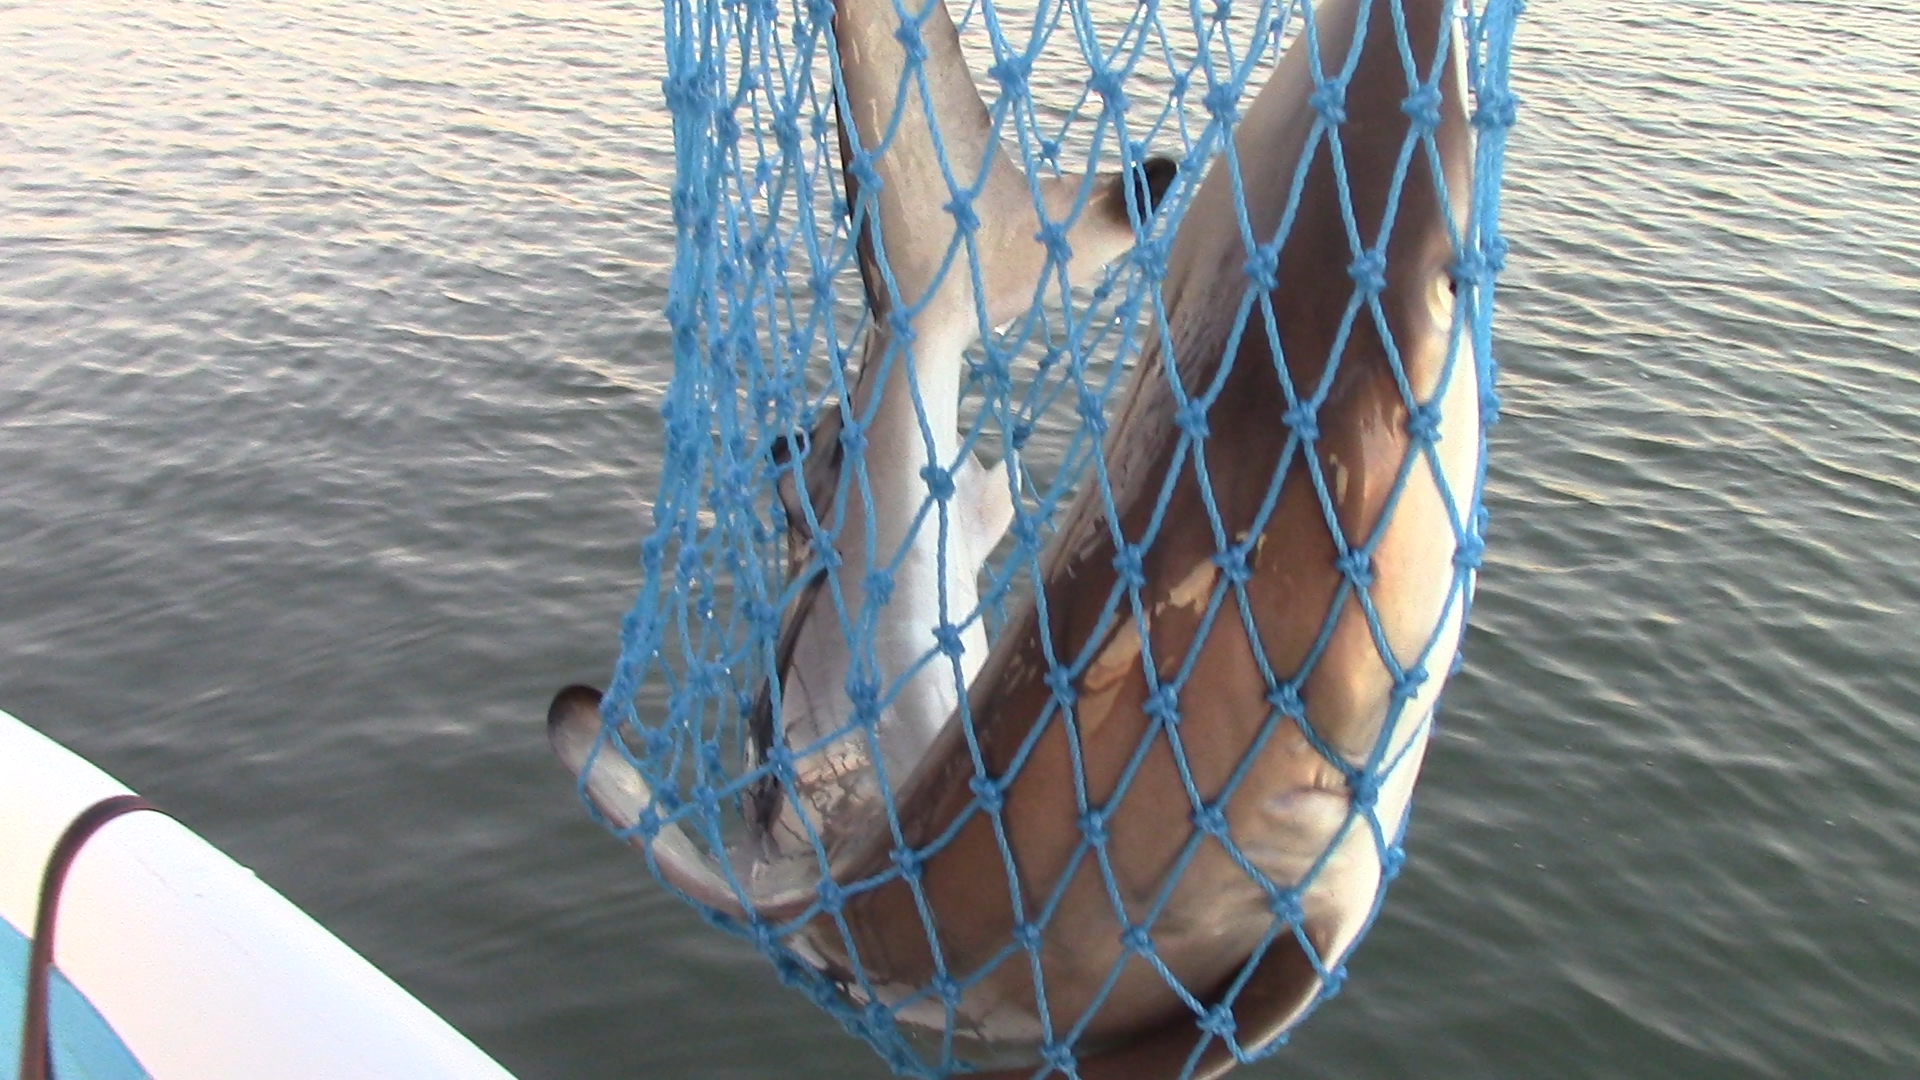 My second shark. She was about 3.5 feet long and put up a great fight.